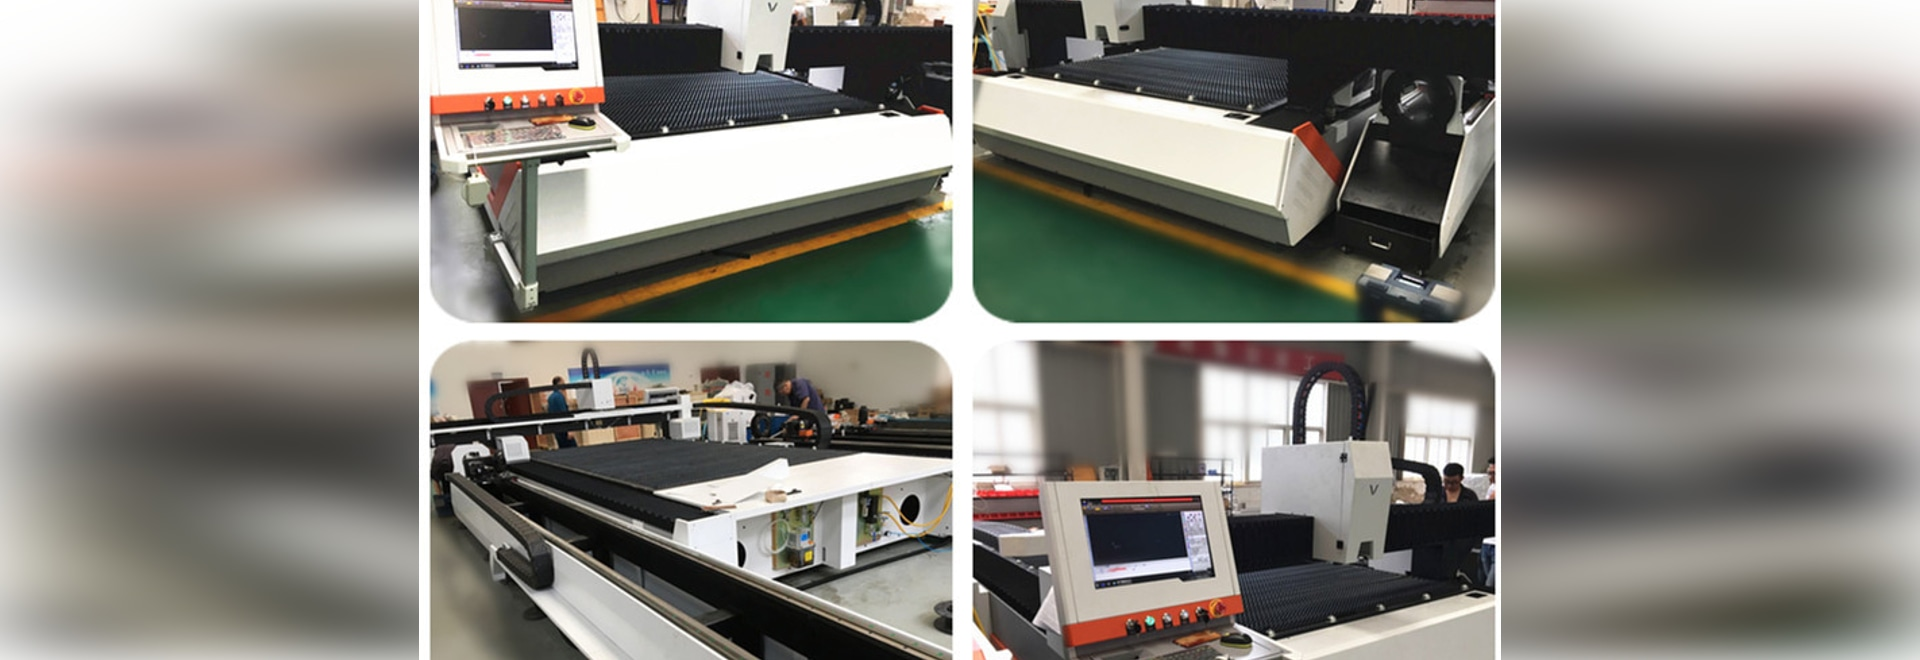 Cnc Fiber Laser Metal Pipe Cutting Machine For Square / Rectangular Tube And Sheet & Cnc Fiber Laser Metal Pipe Cutting Machine For Square / Rectangular ...